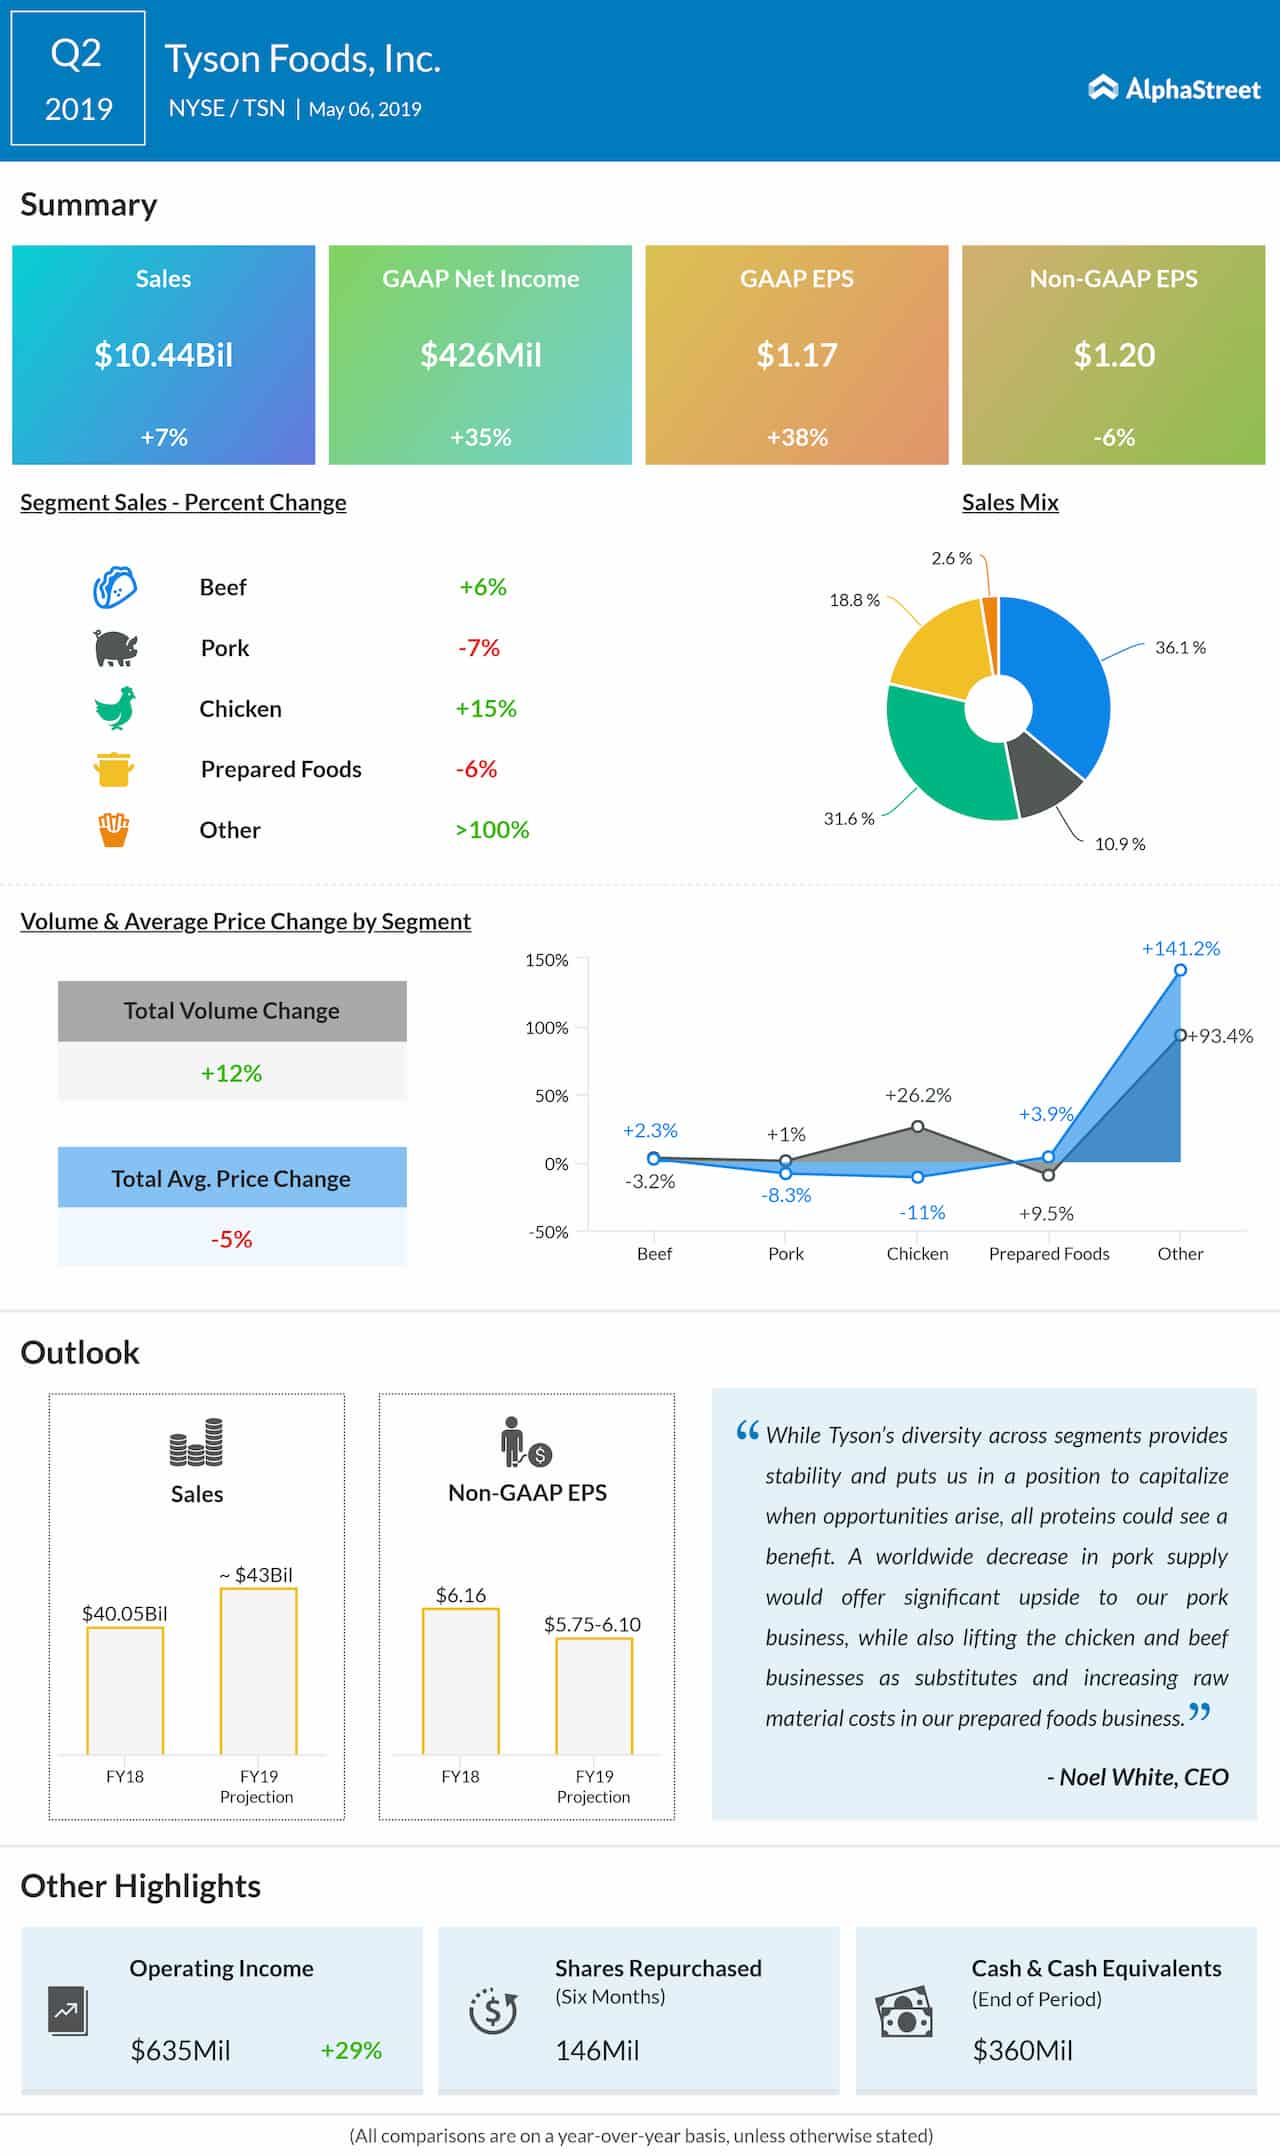 Tyson Foods Q2 2019 earnings infographic